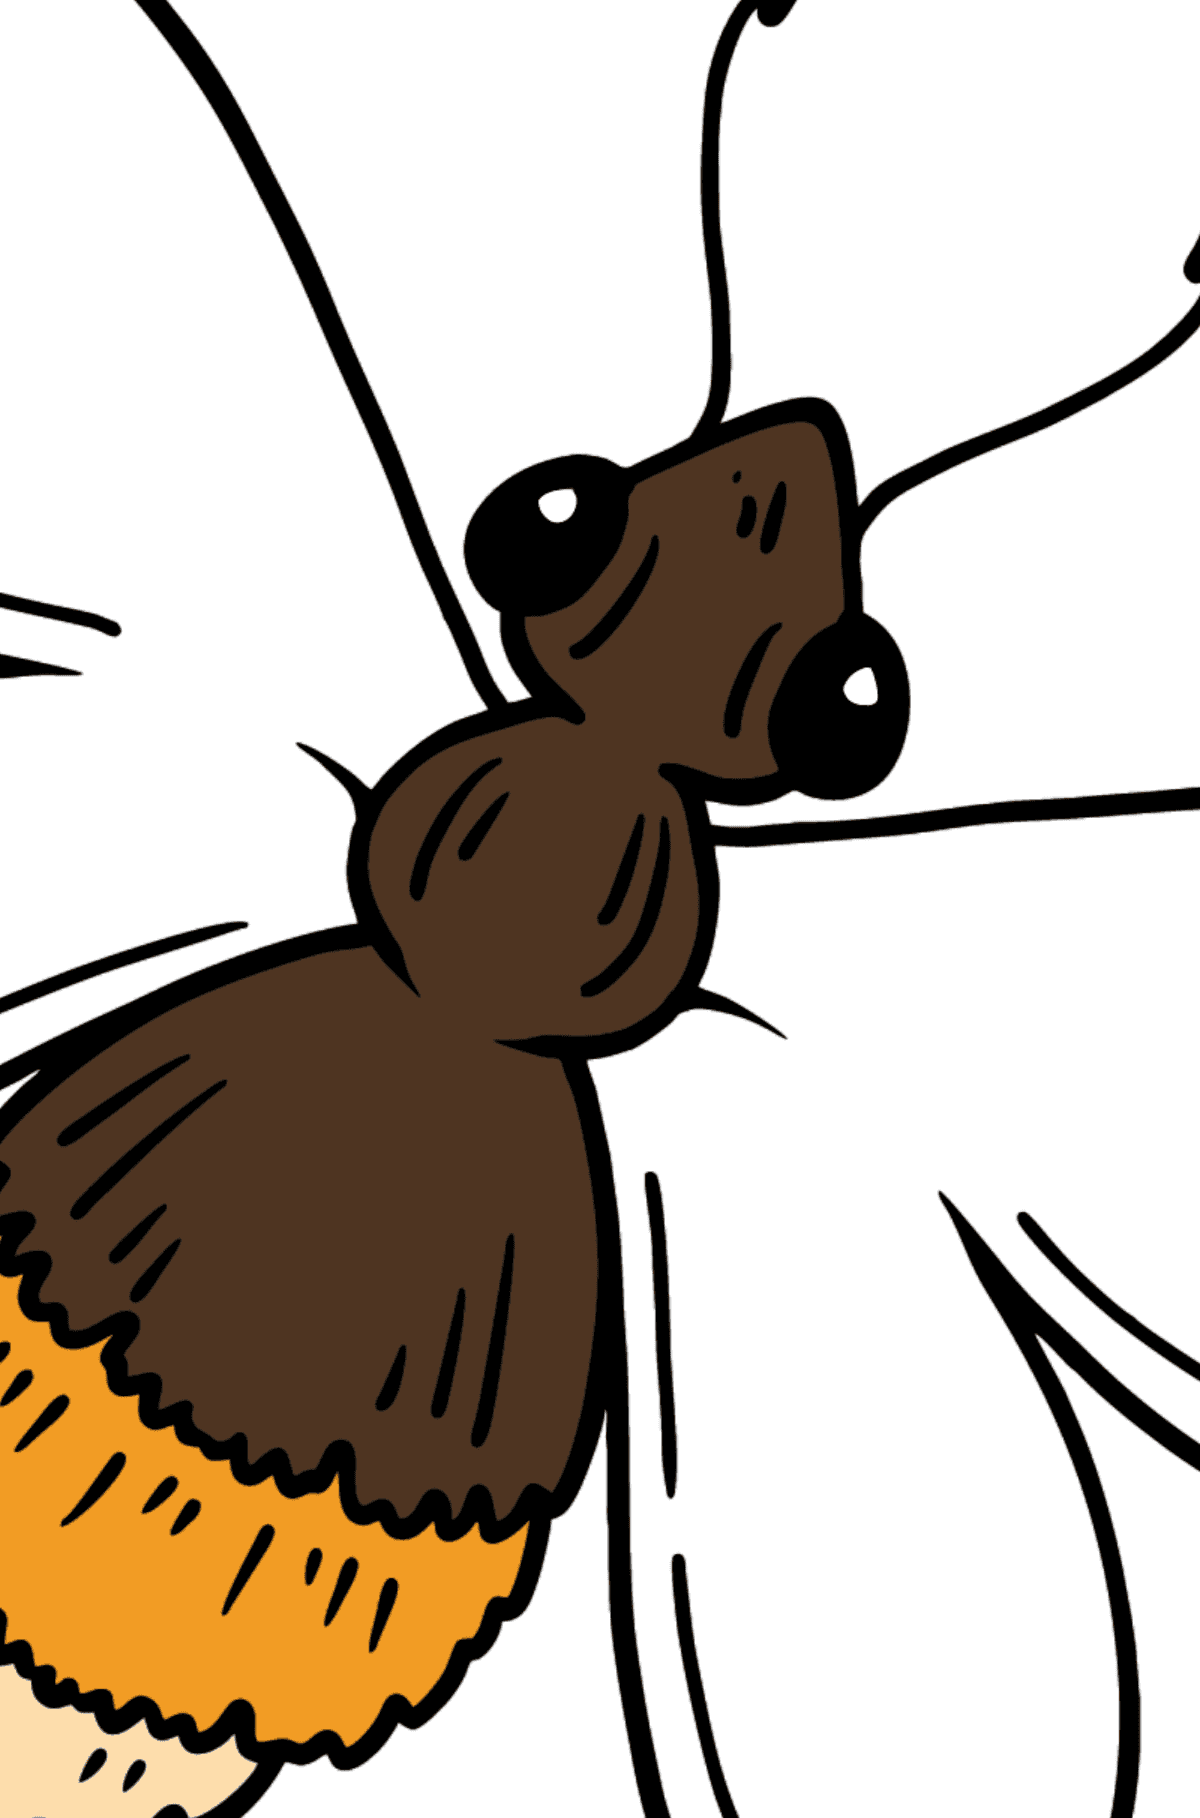 Bee coloring page - Coloring by Letters for Kids